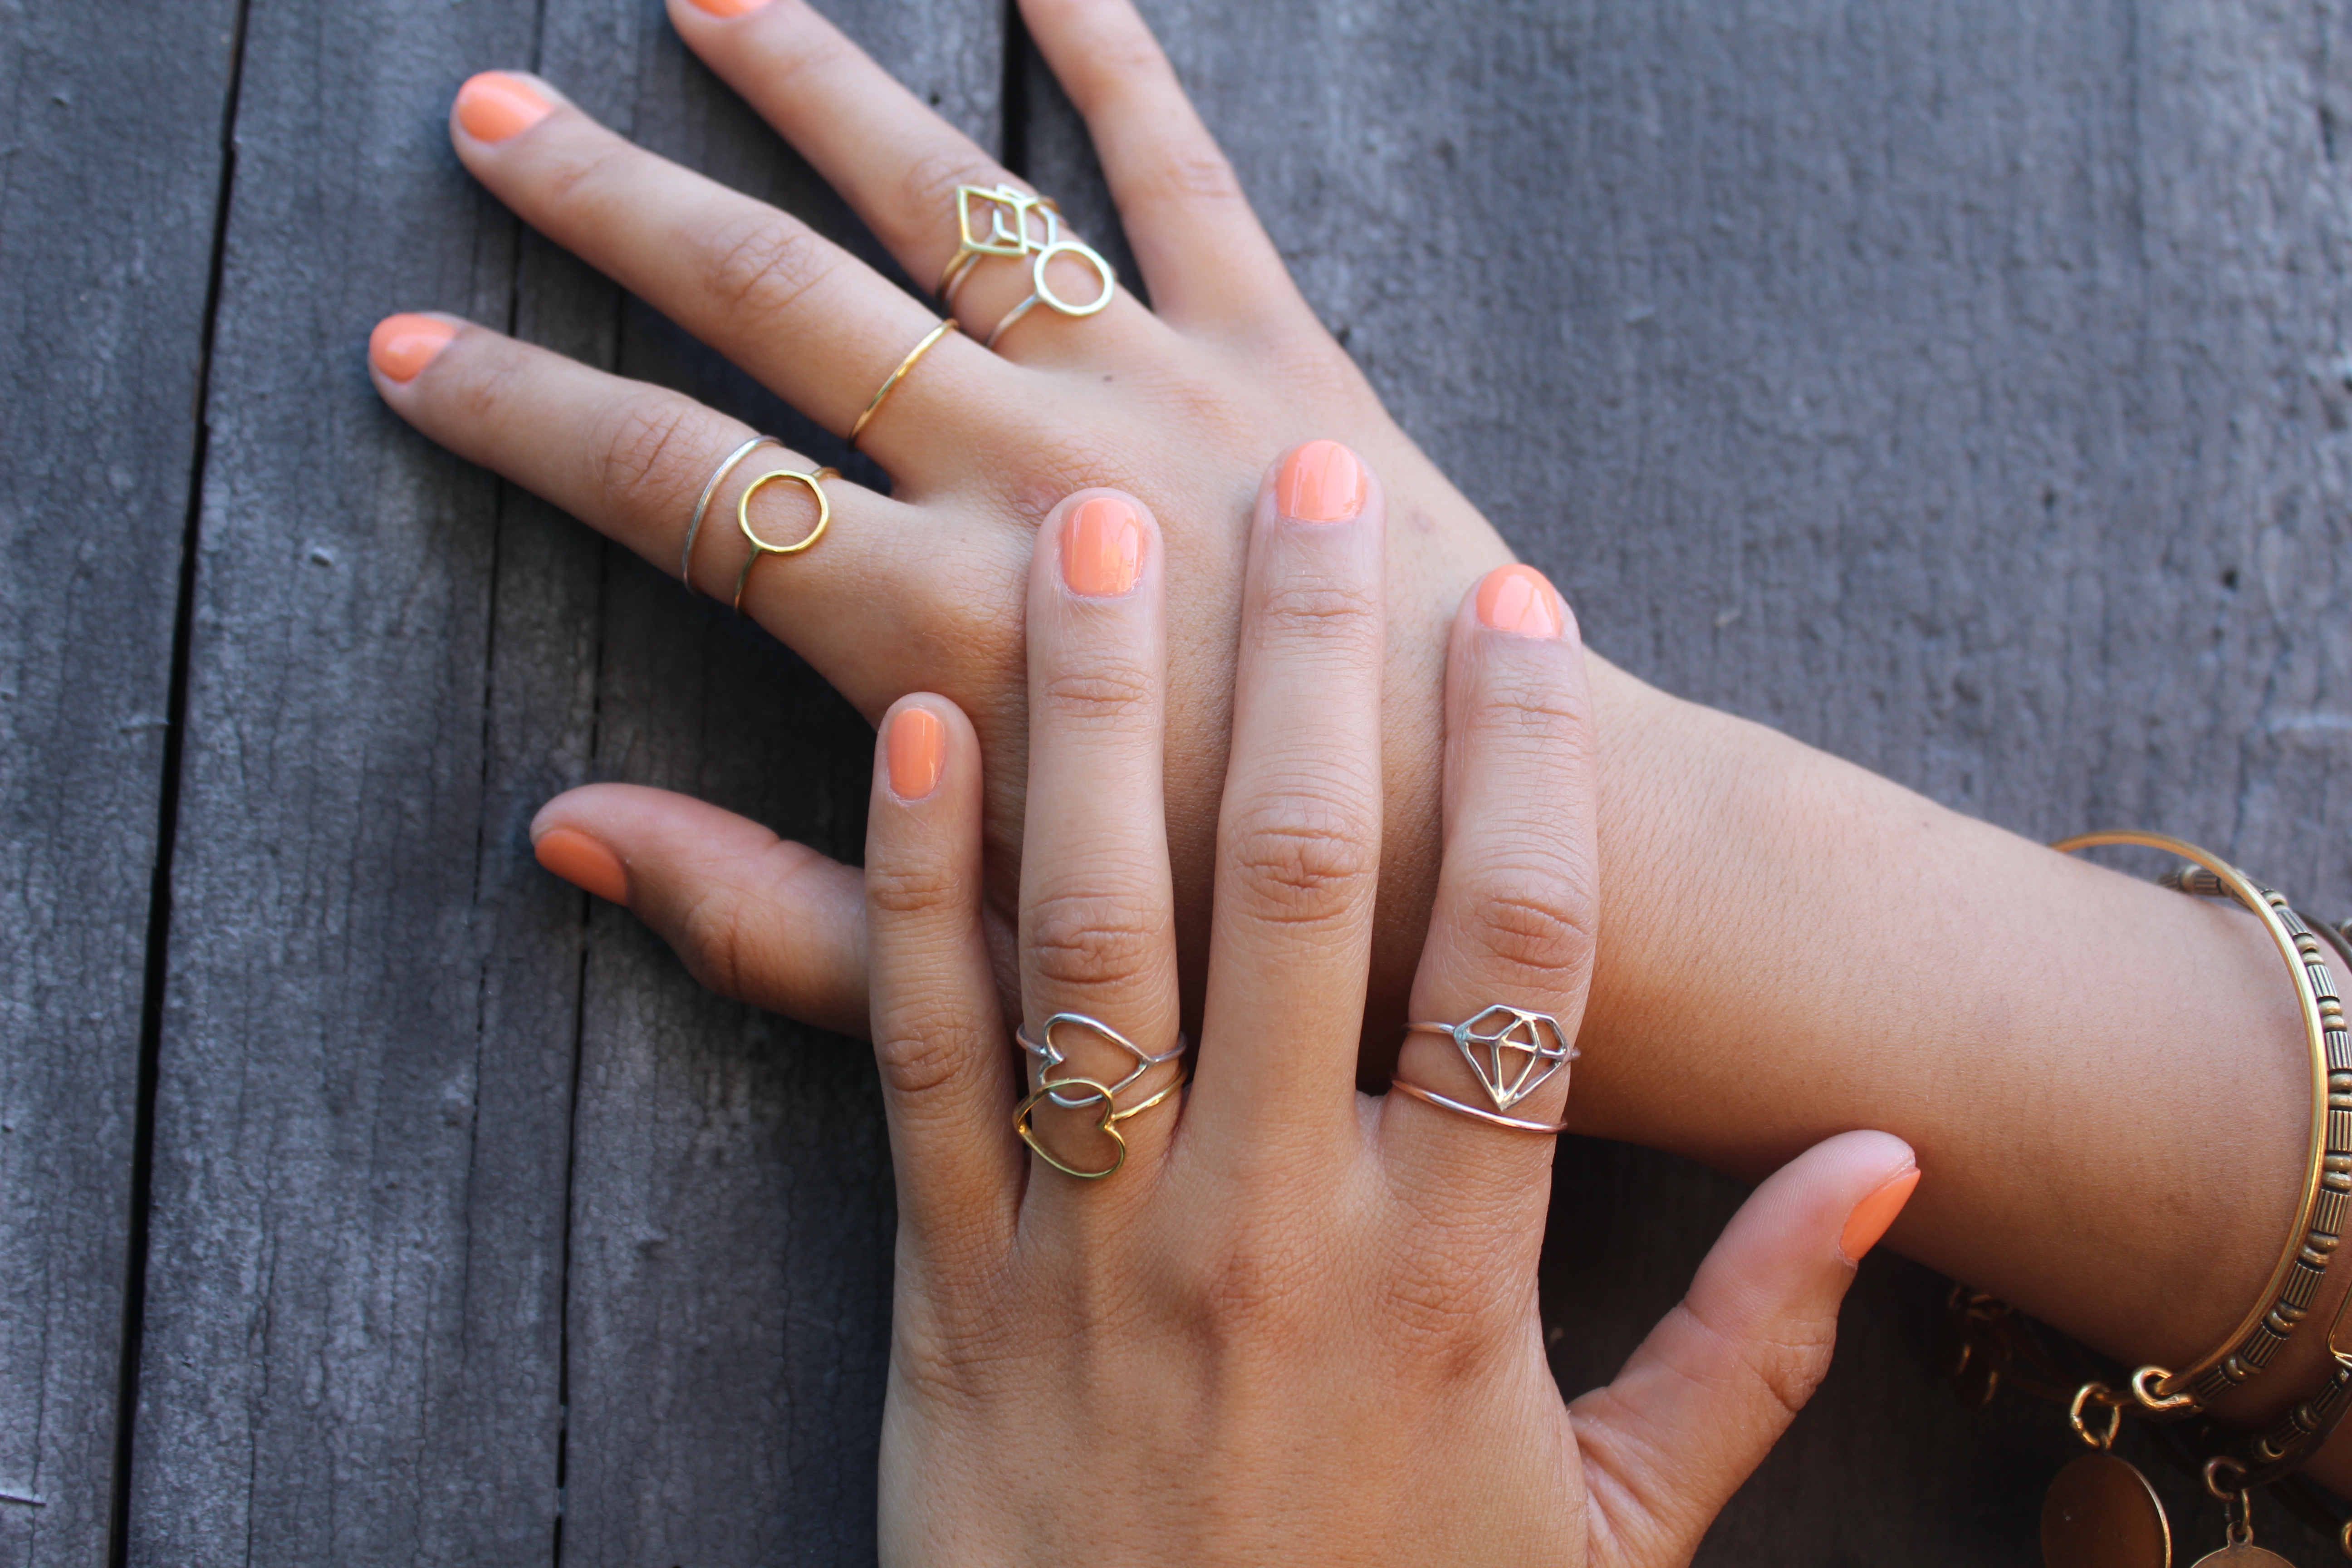 Silver Ring On Right Ring Finger